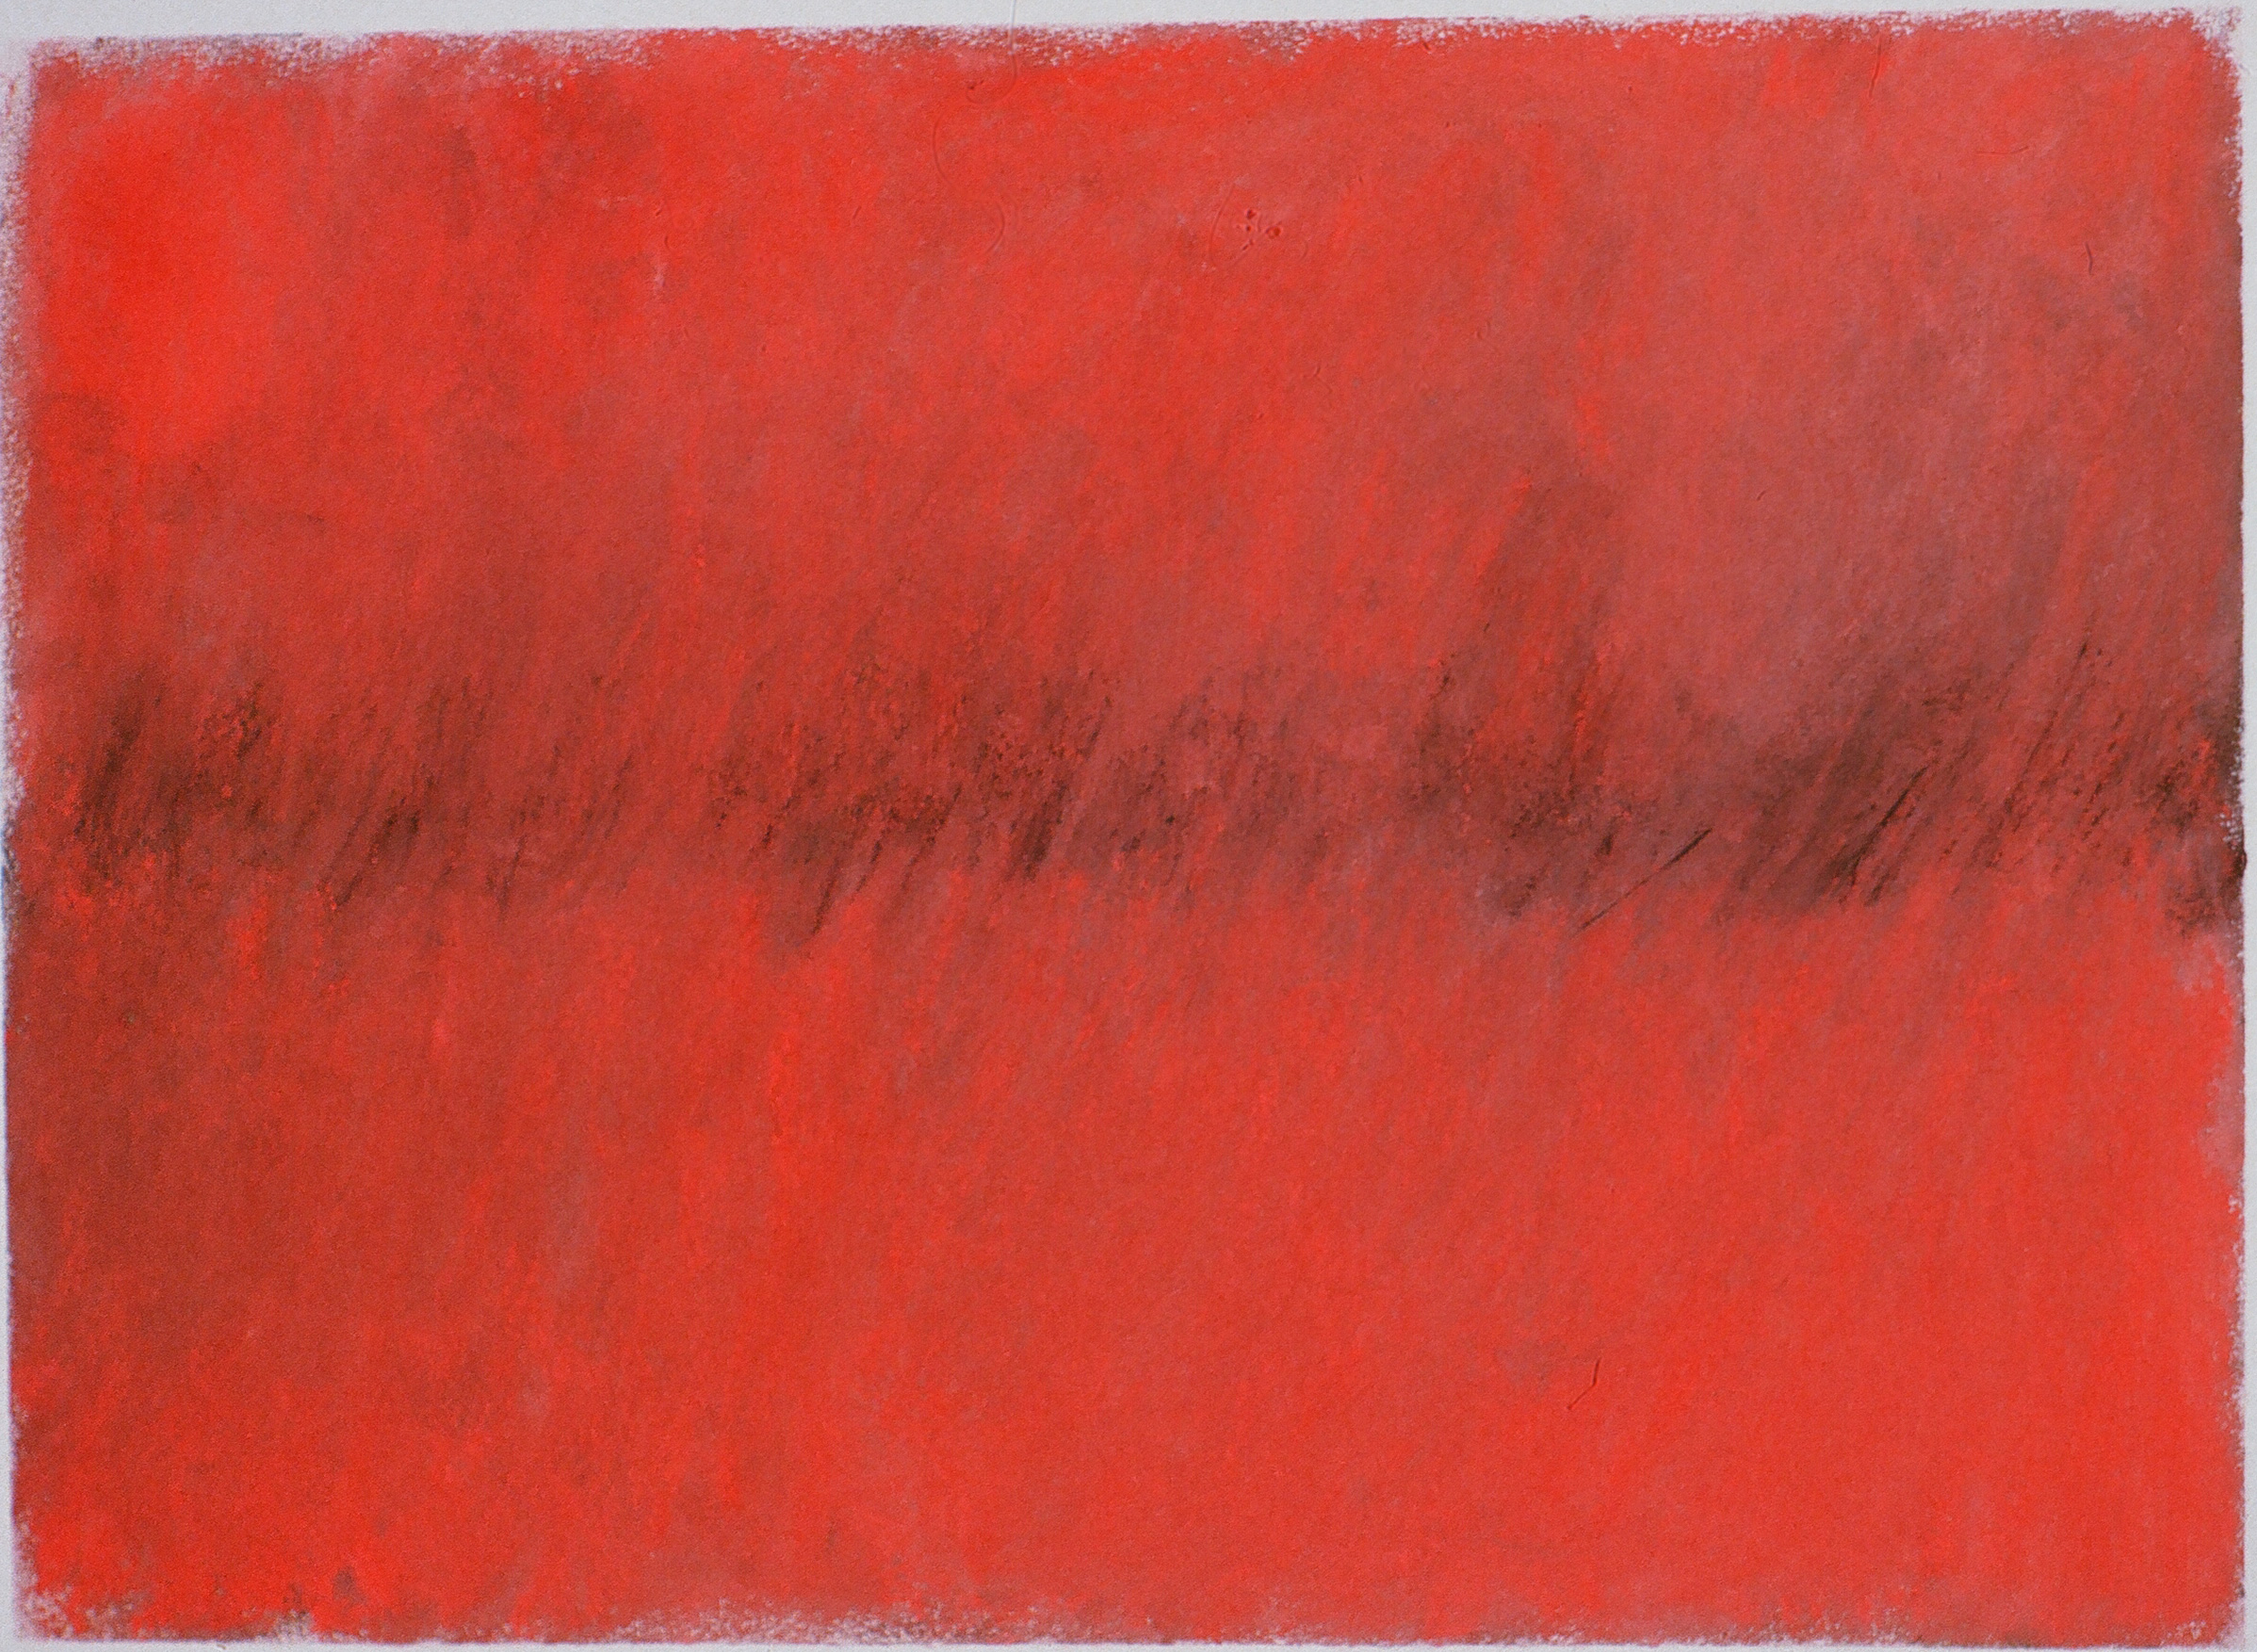 "Red Field   17"" x 22.5"" Pastel on paper 2001"